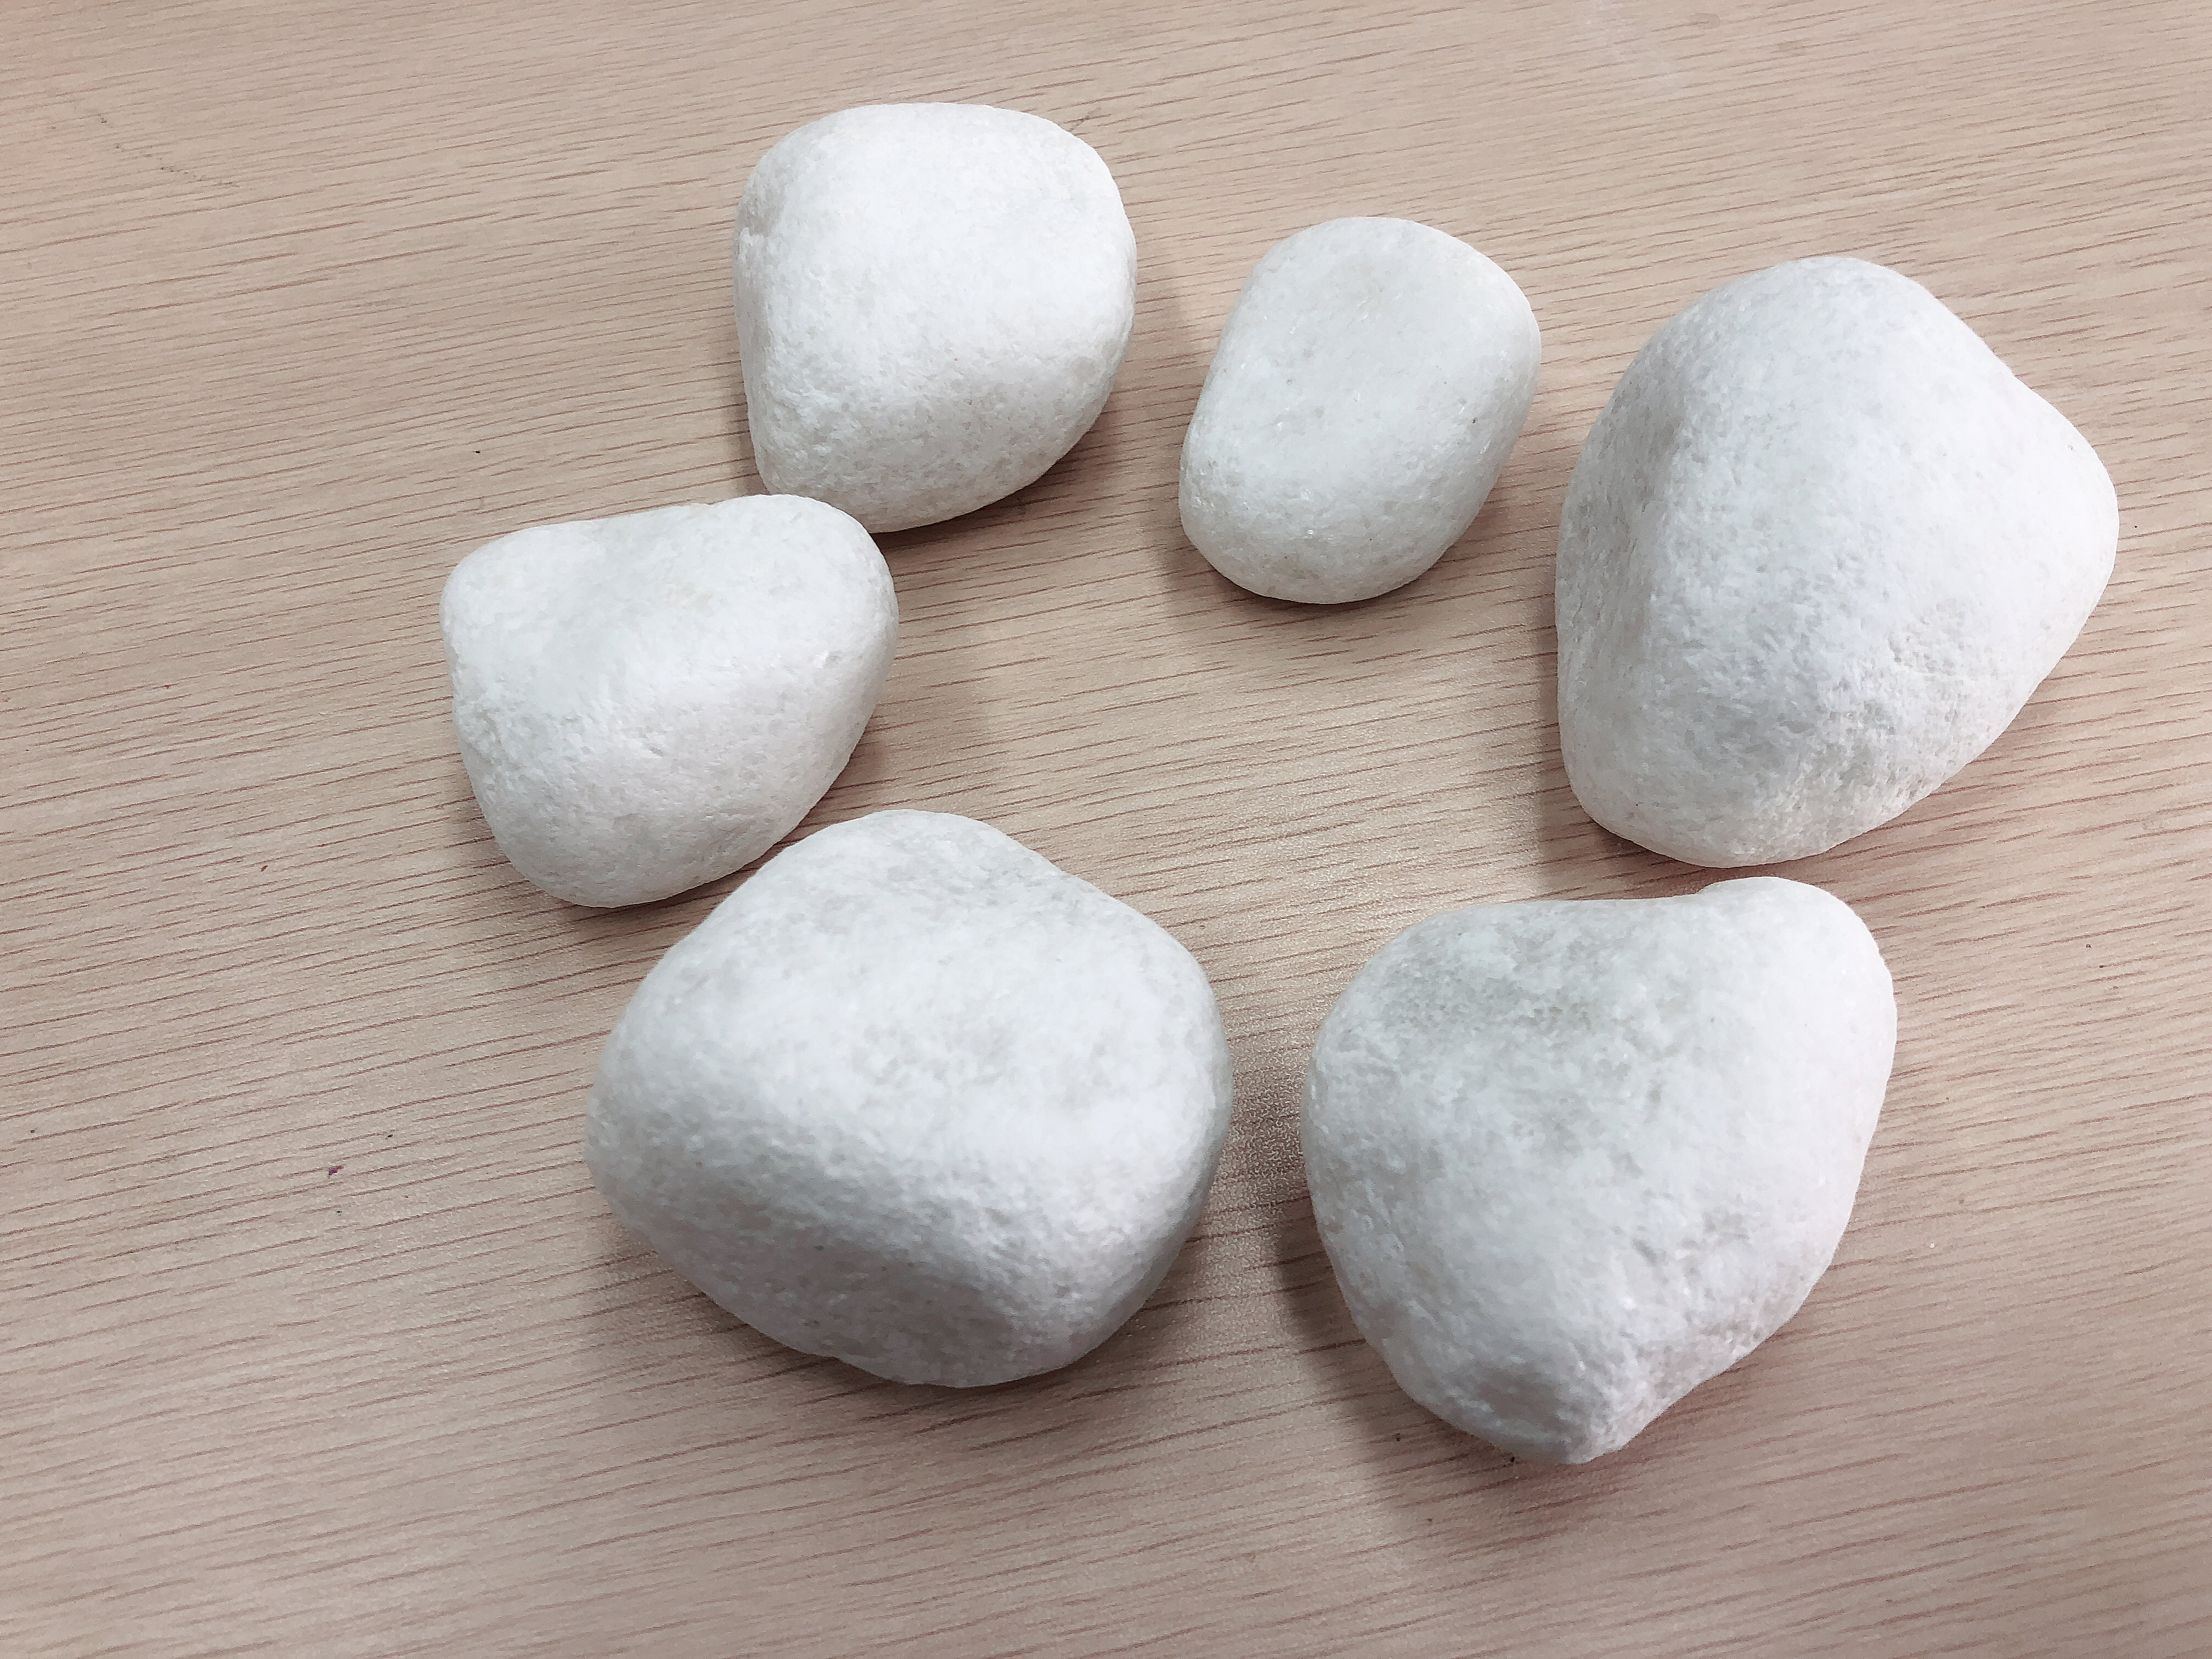 china snow white pebbles marble material garden decorative stone